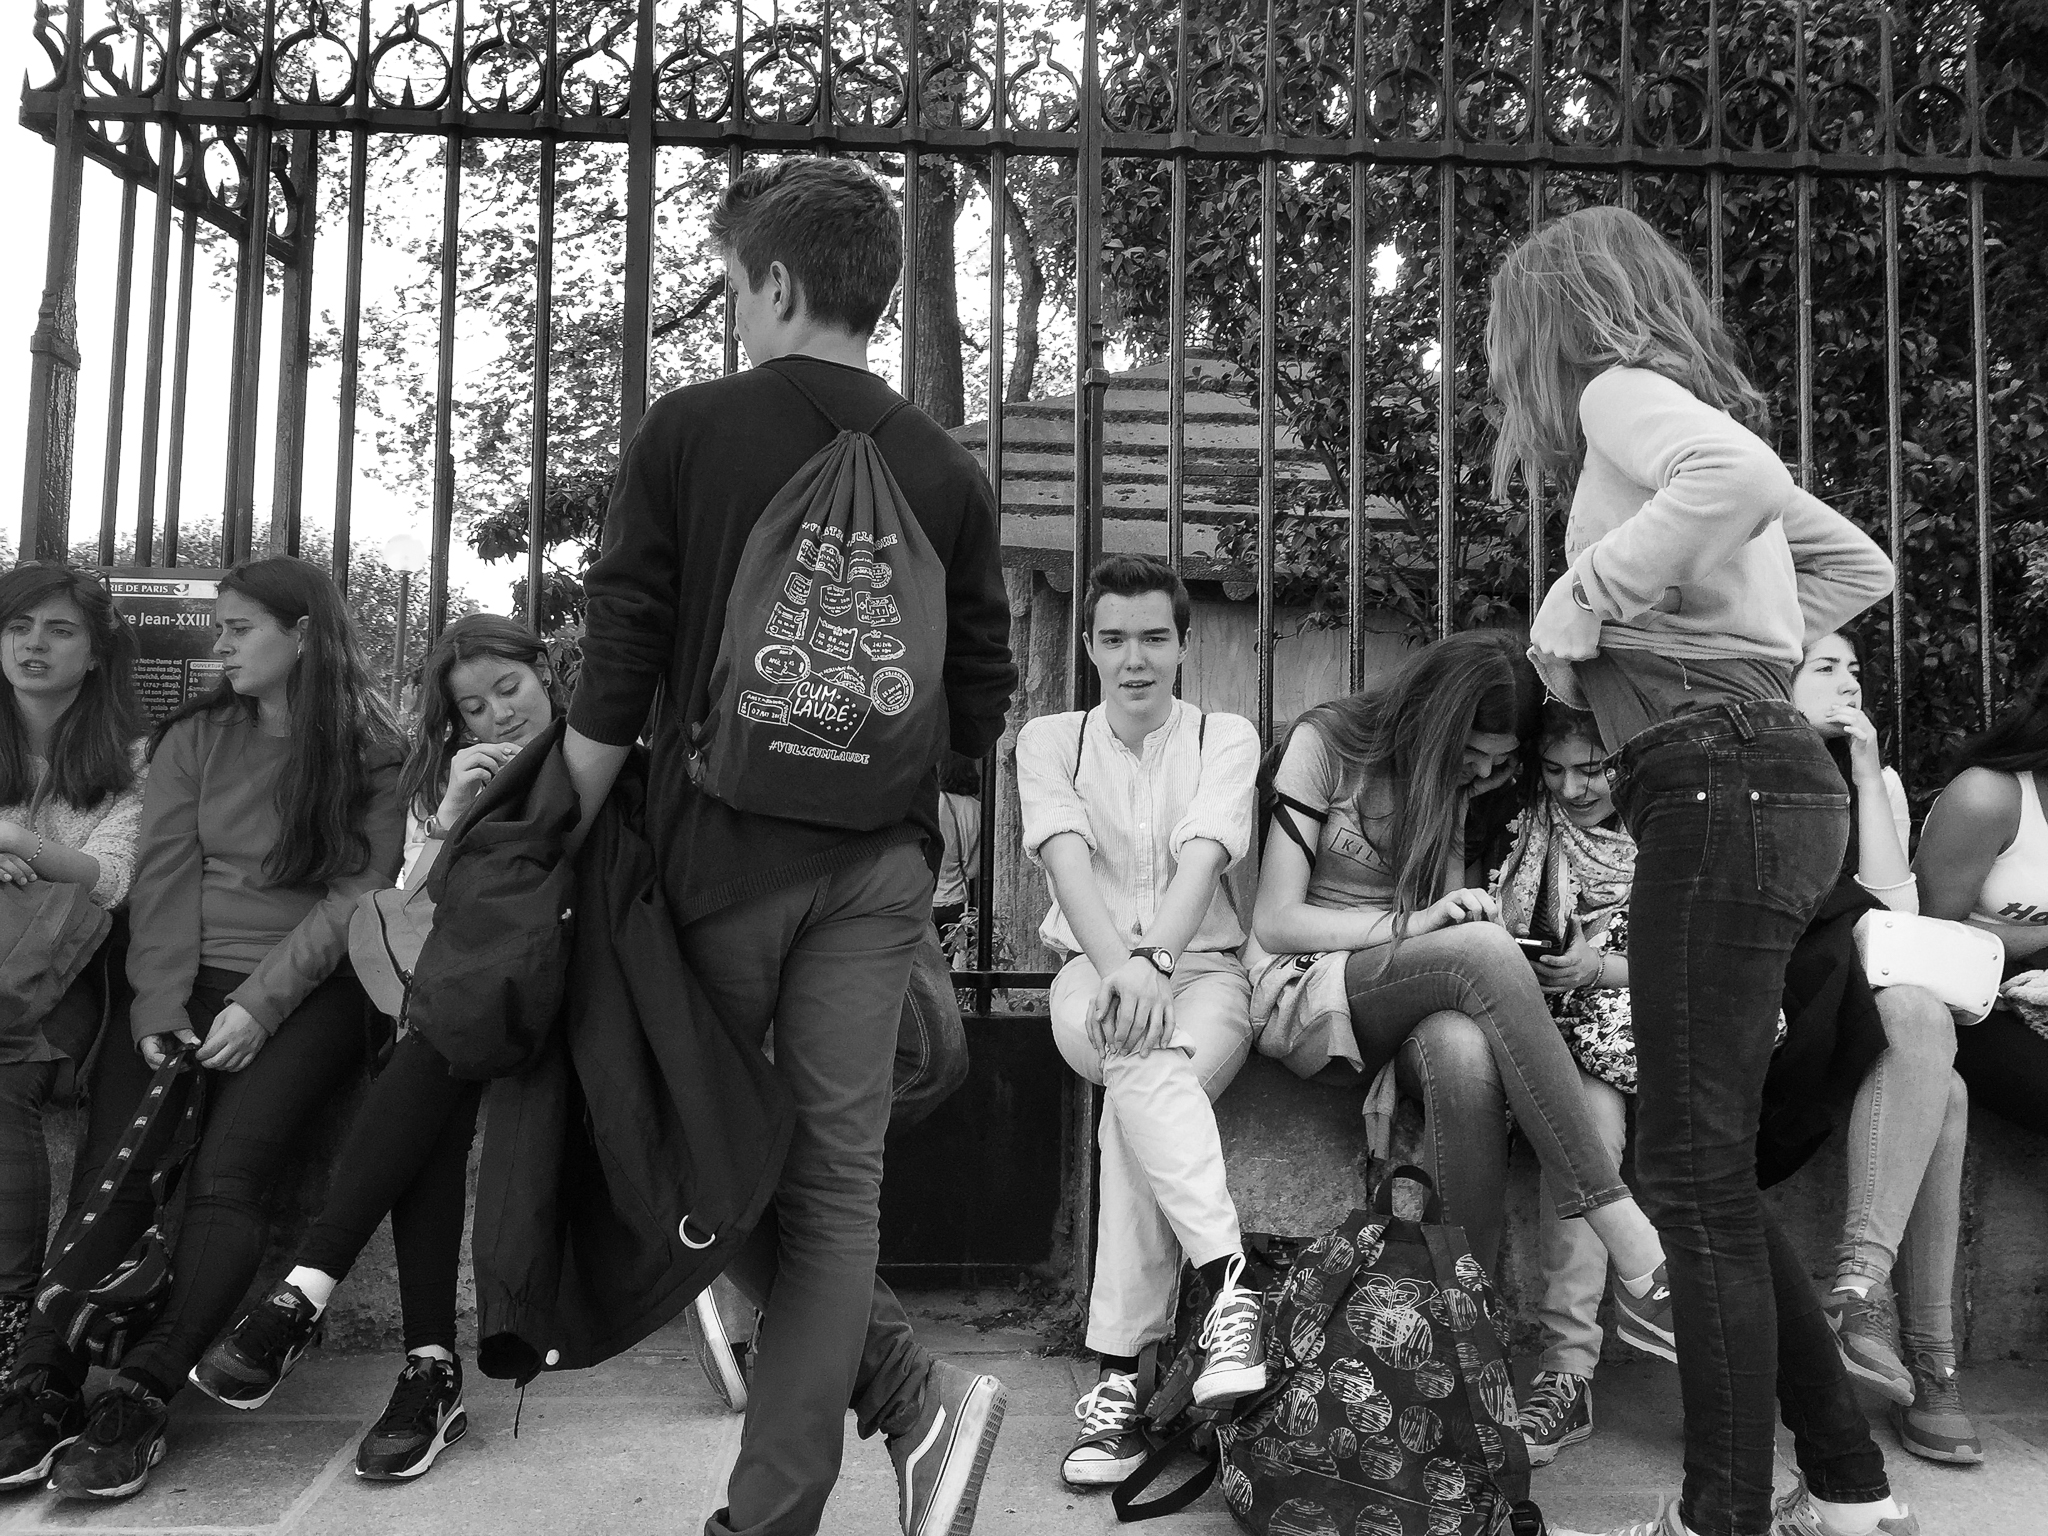 School friends congregate outside a park in Paris, France.